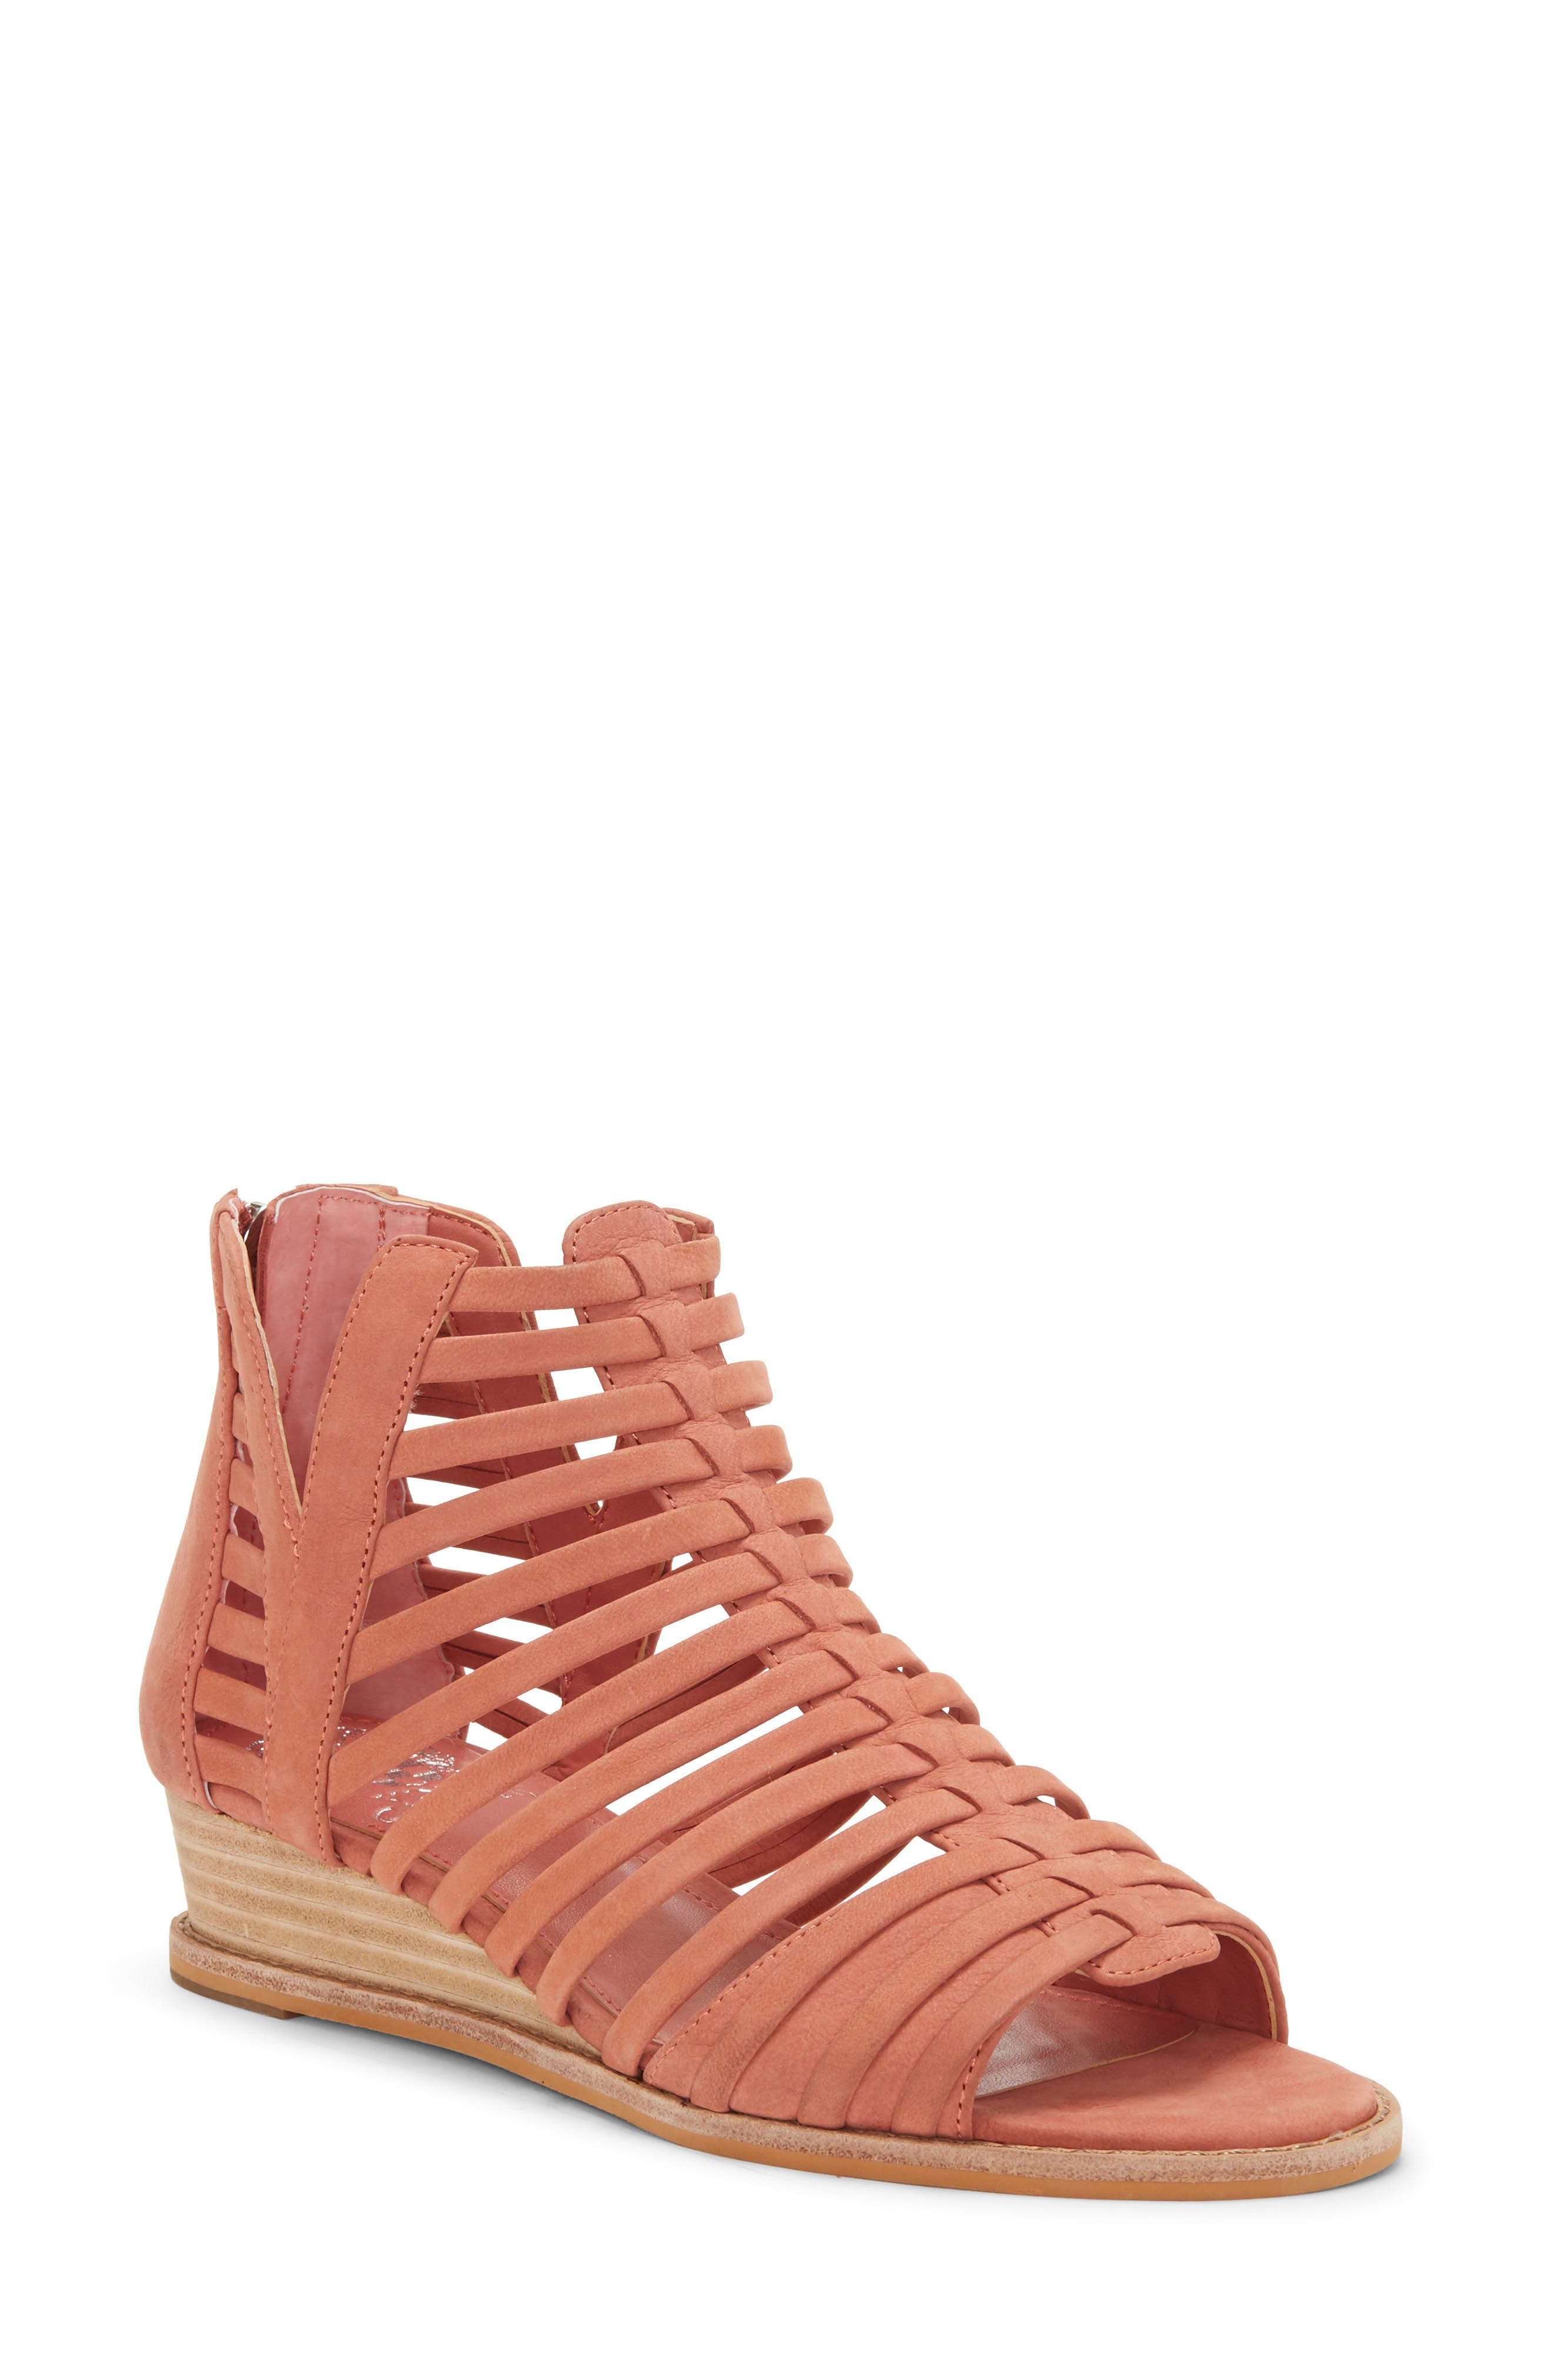 Vince Camuto Revey Wedge Sandal, Coral